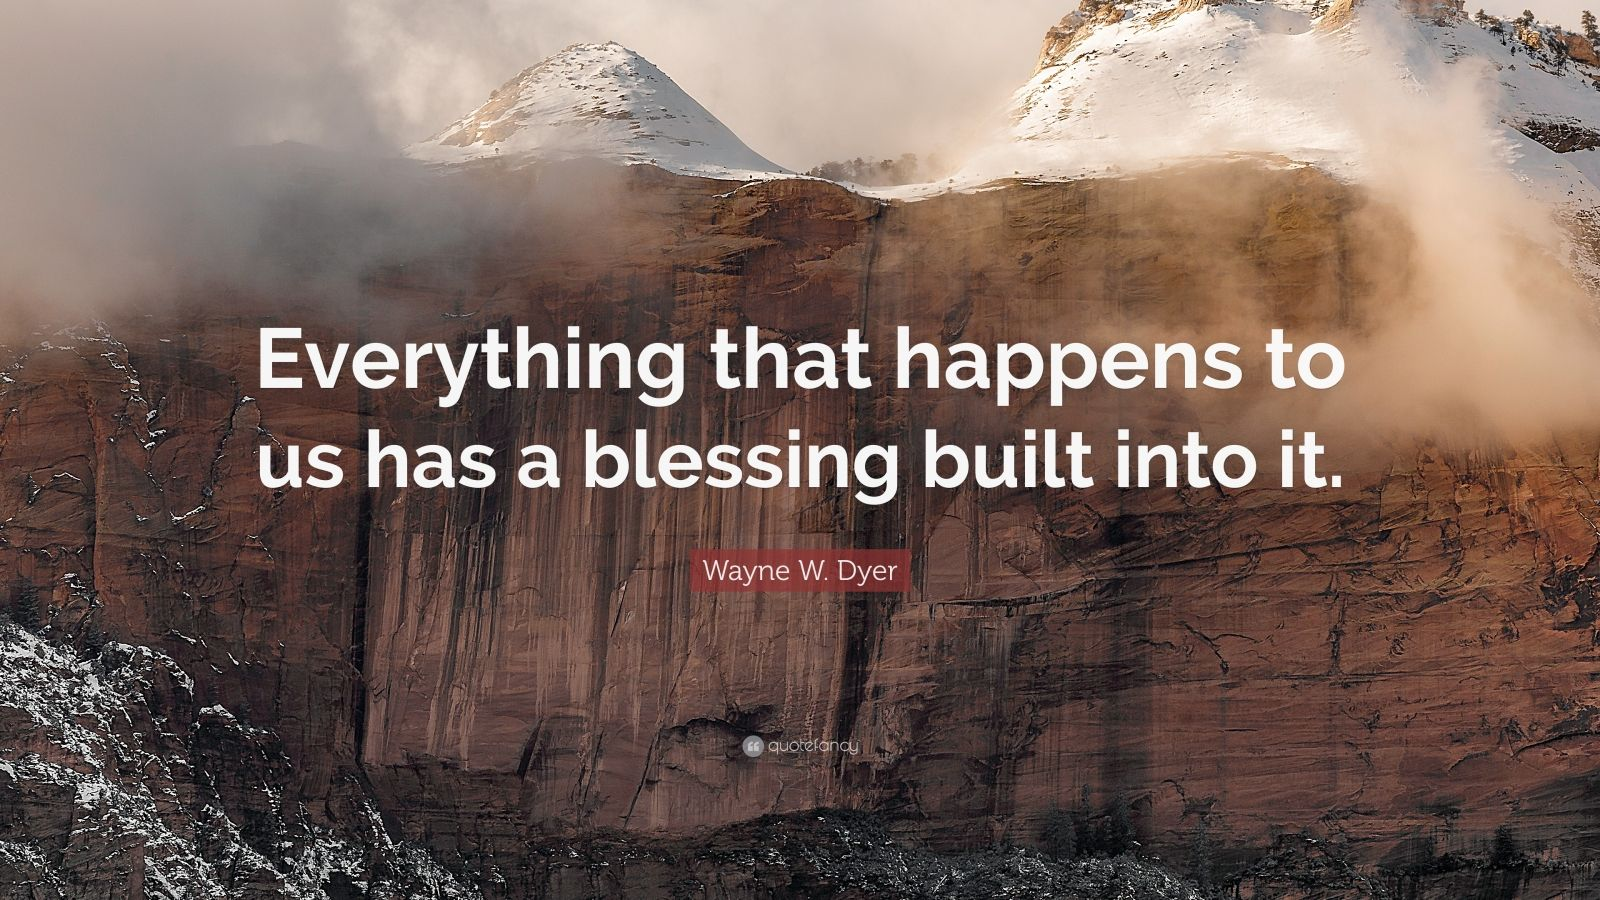 """Wayne W. Dyer Quote: """"Everything that happens to us has a blessing built into it."""""""